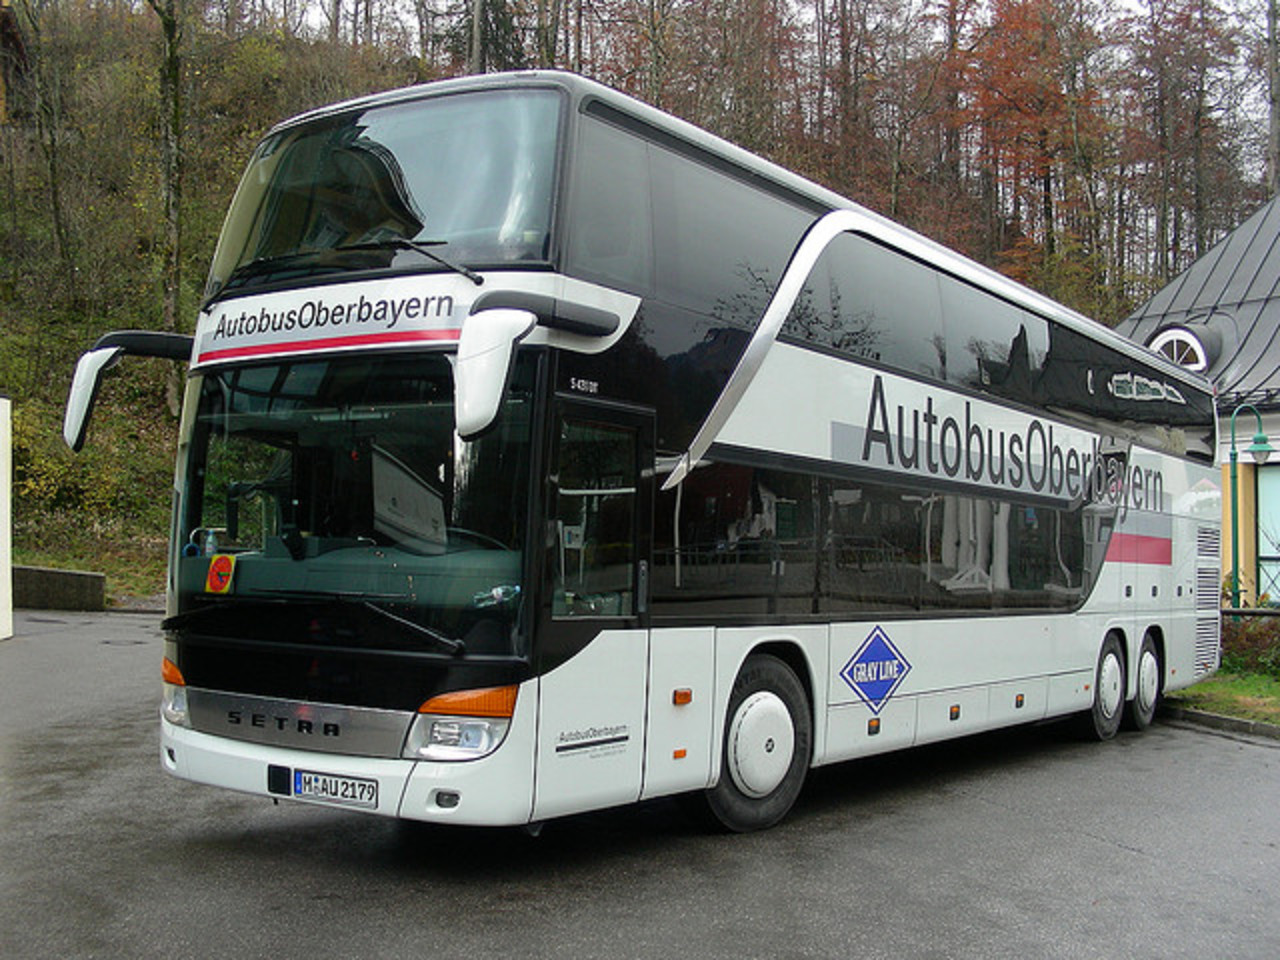 Setra Bus | Flickr - Photo Sharing!